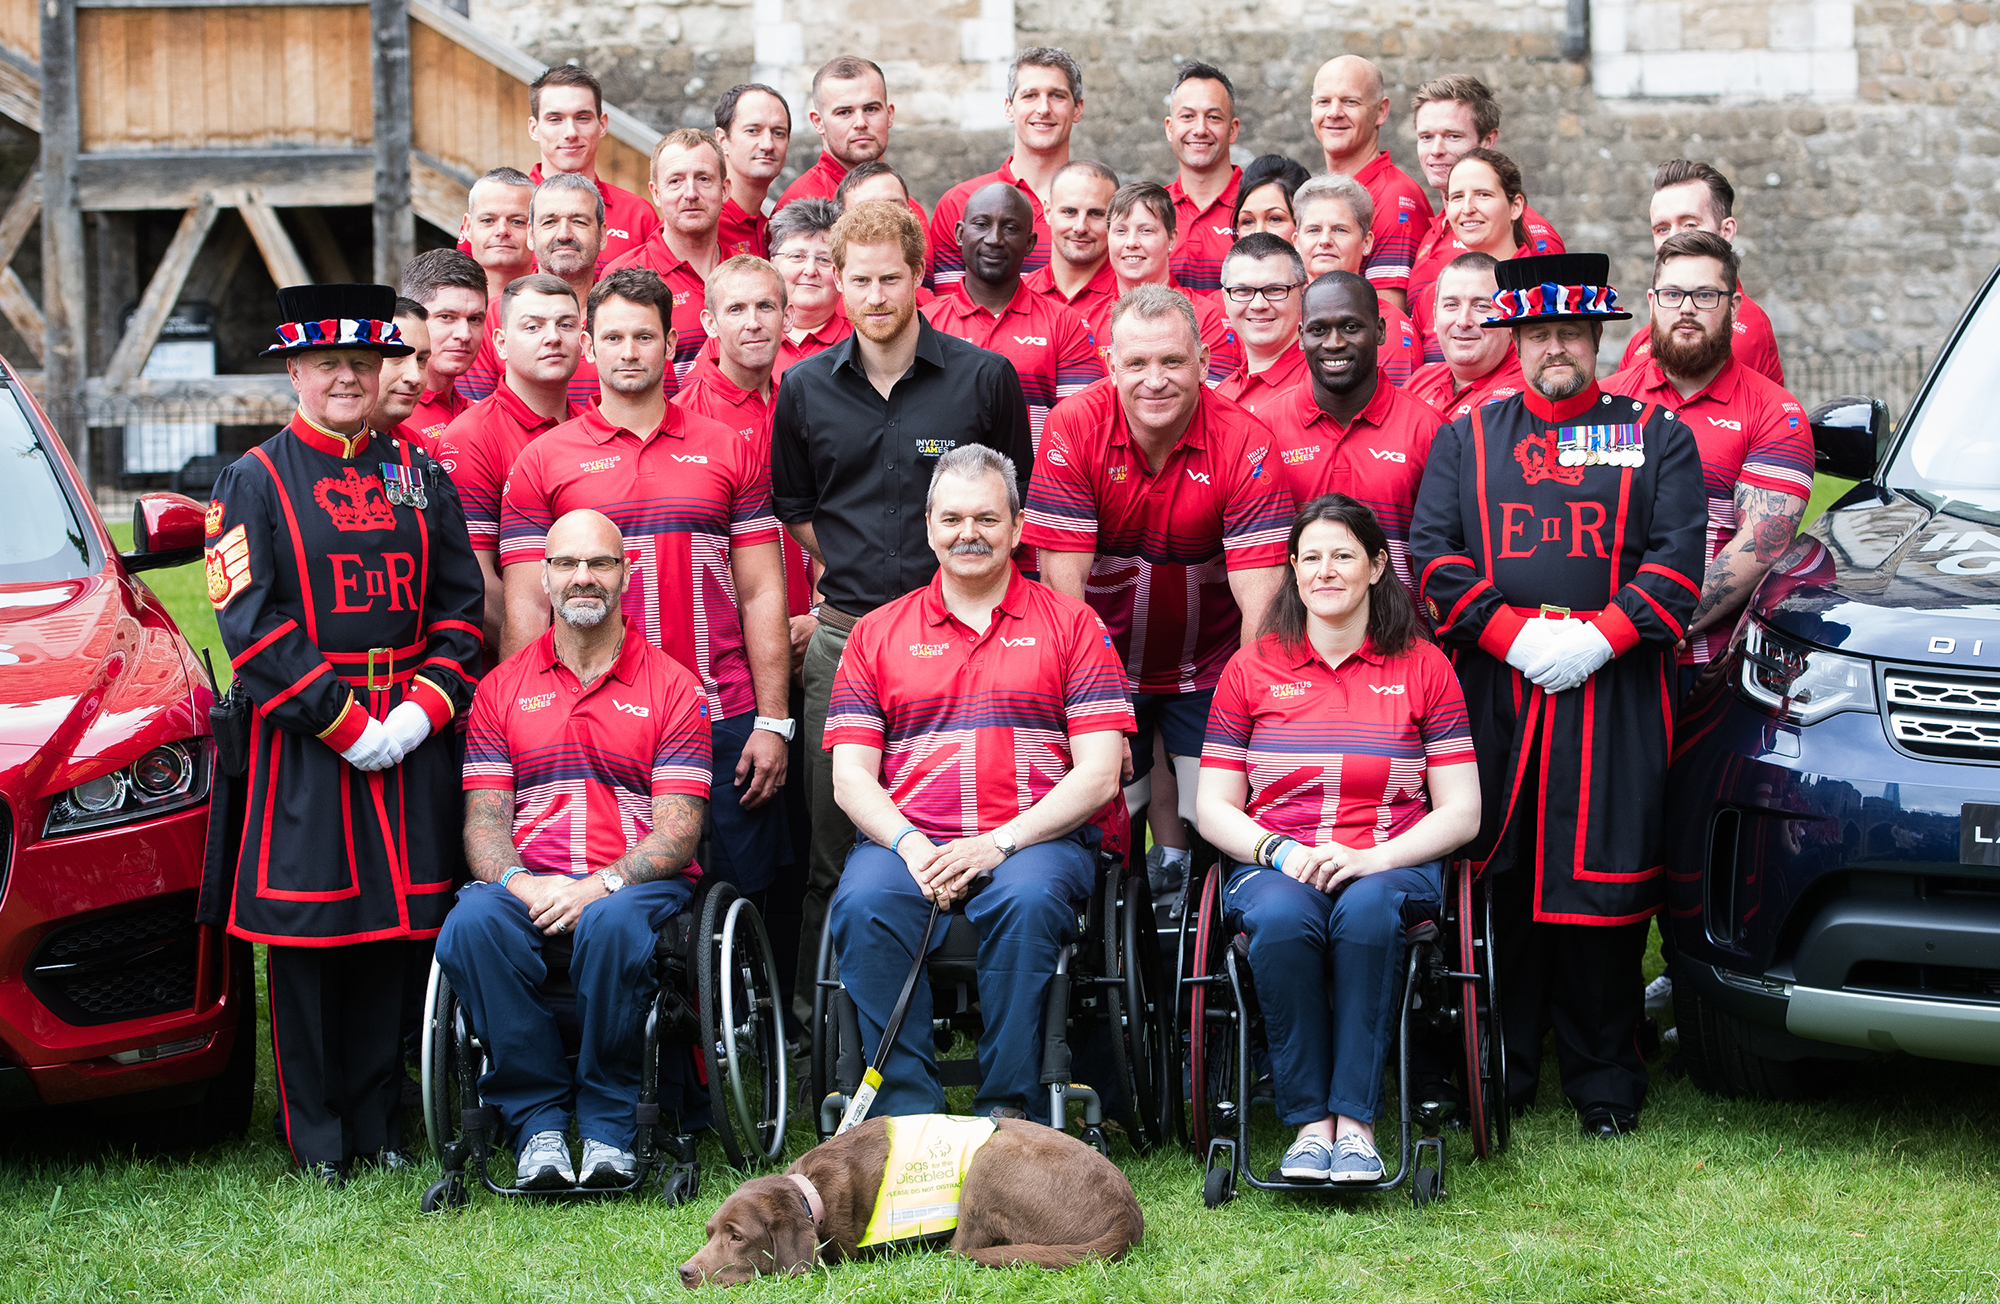 Prince Harry Attends UK Team Launch For Invictus Games Toronto 2017 - Tower Of London